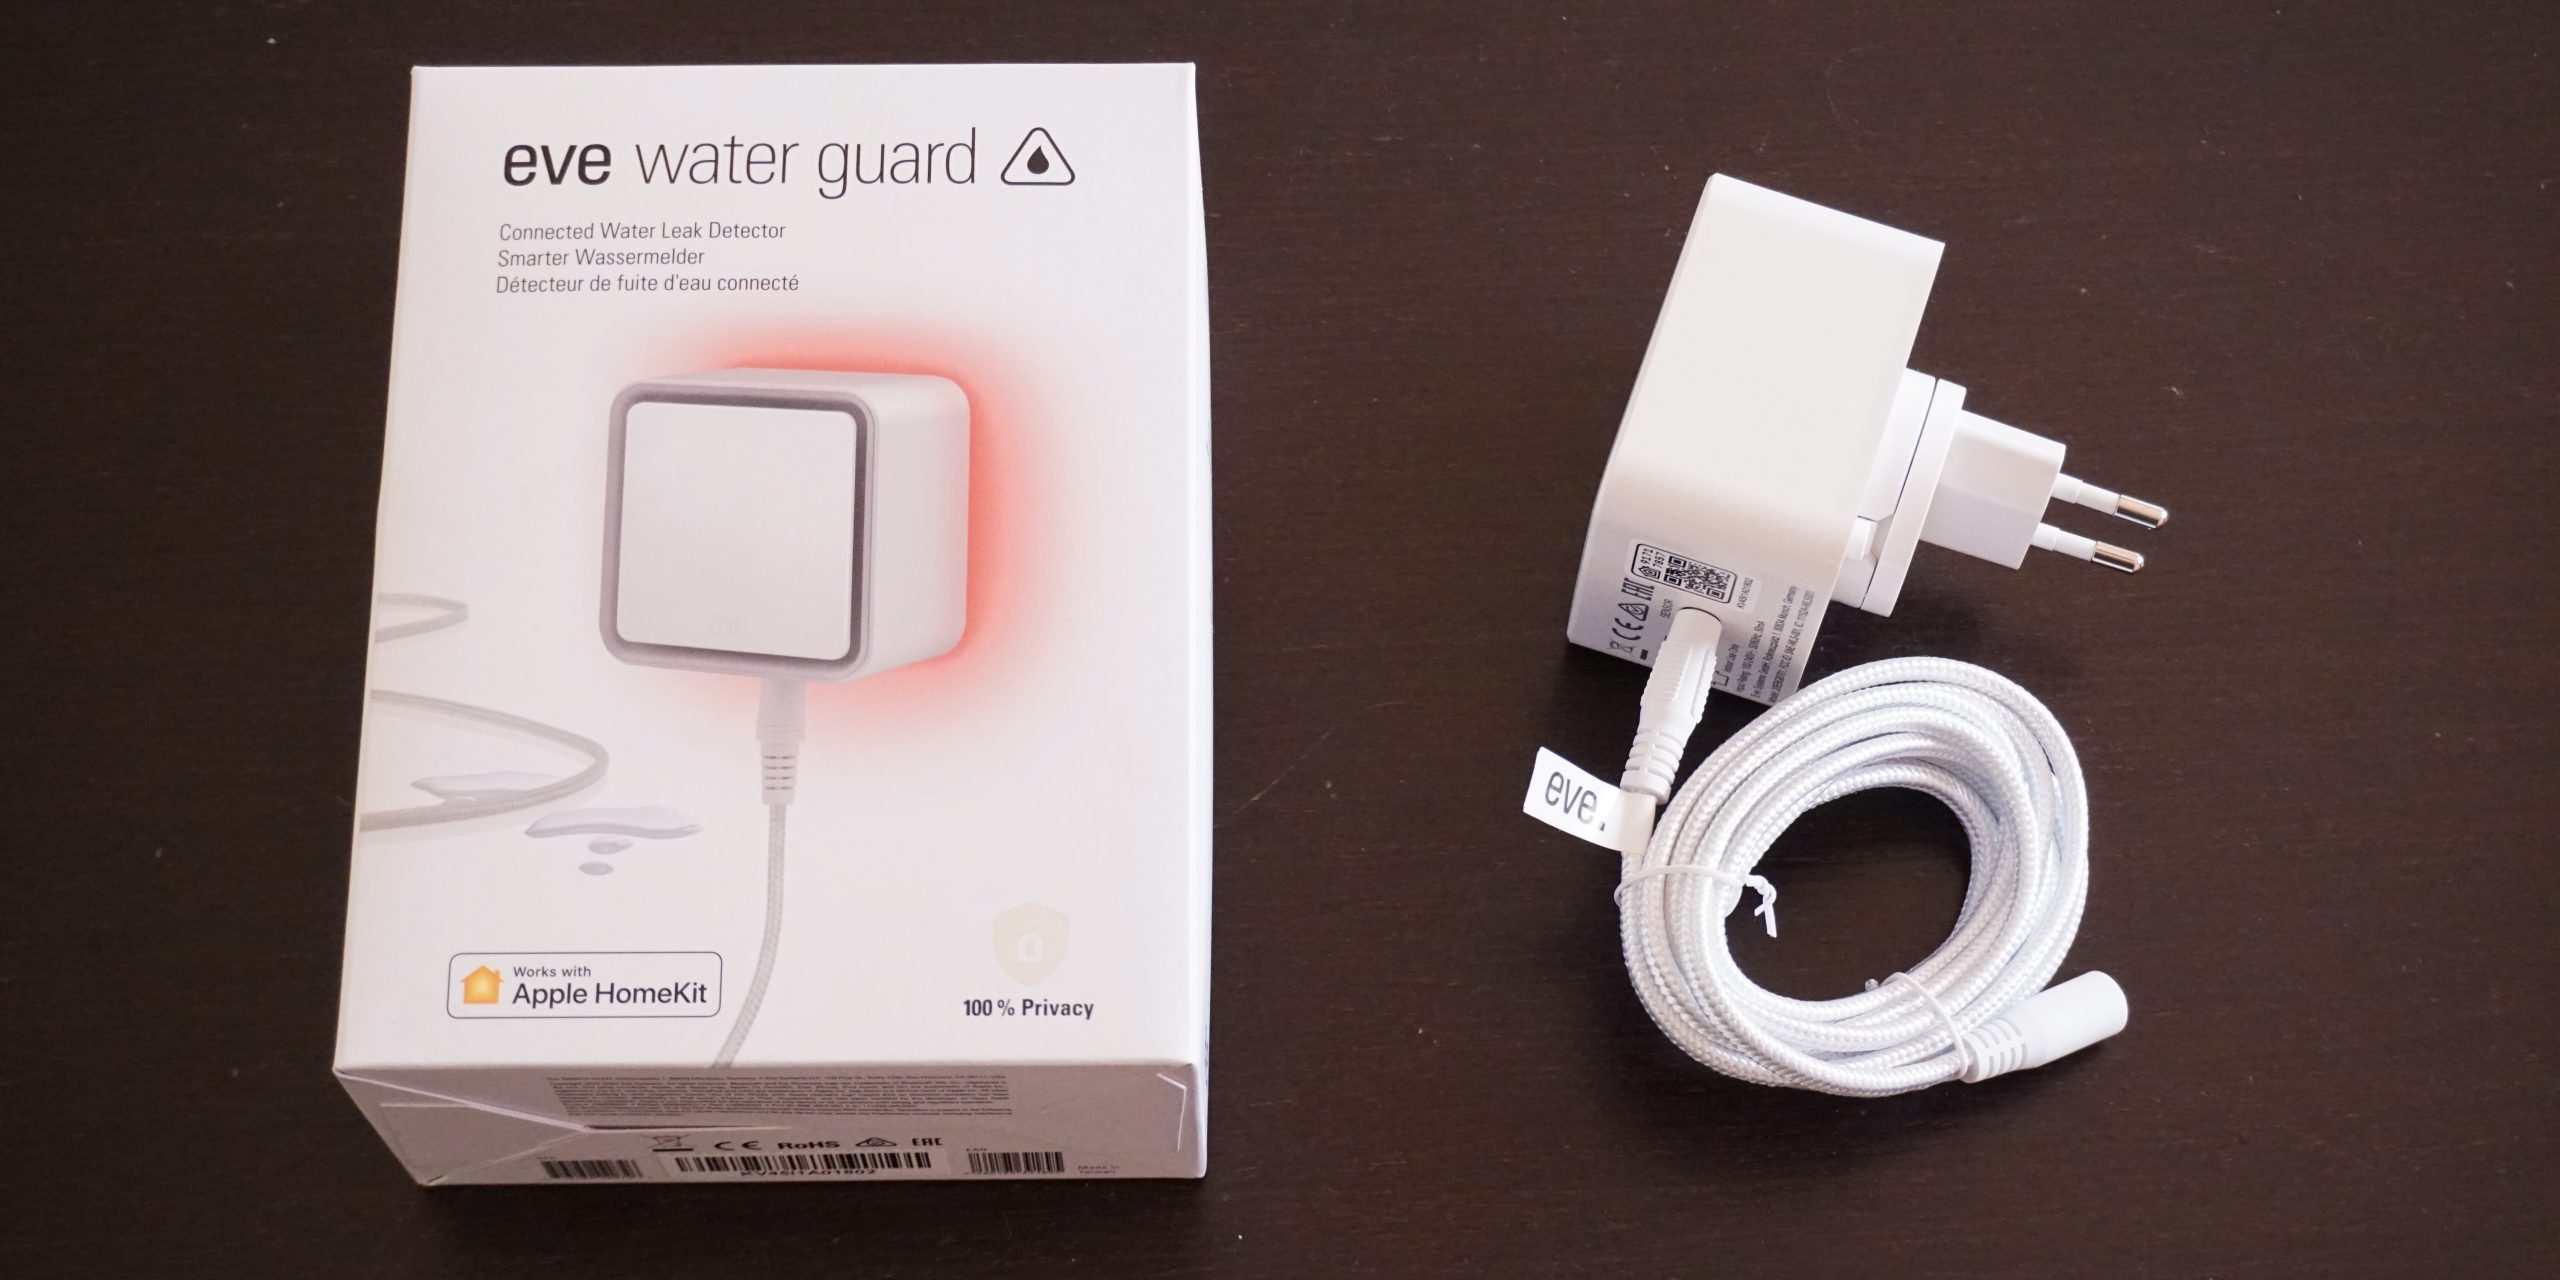 Eve Water Guard, detector de fugas de agua compatible con HomeKit